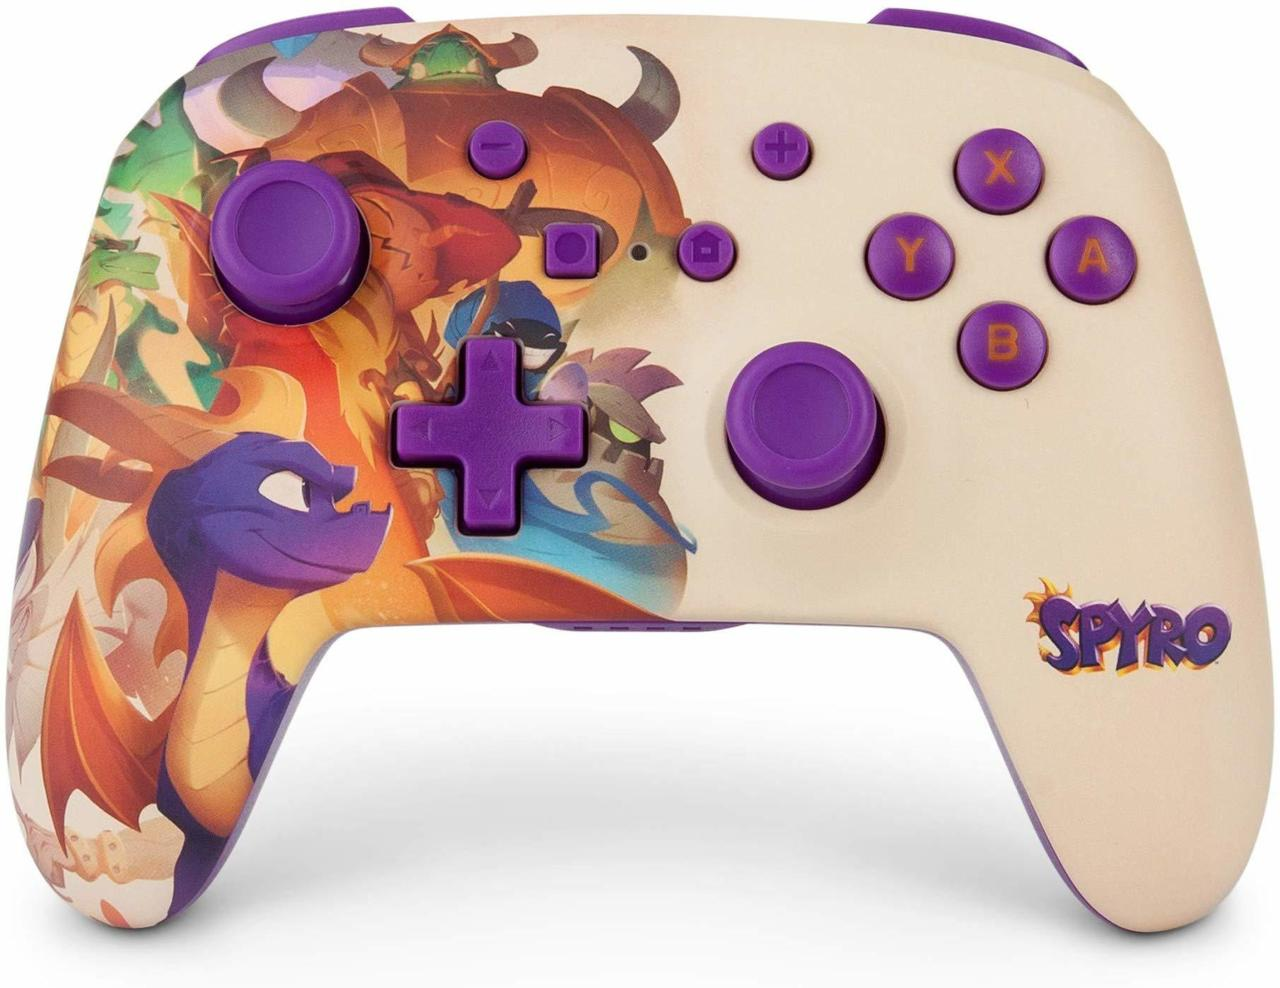 Brand New Sypro Nintendo Switch Pro Controller Coming Out Ahead Of Spyro Reignited Trilogy's Official Launch